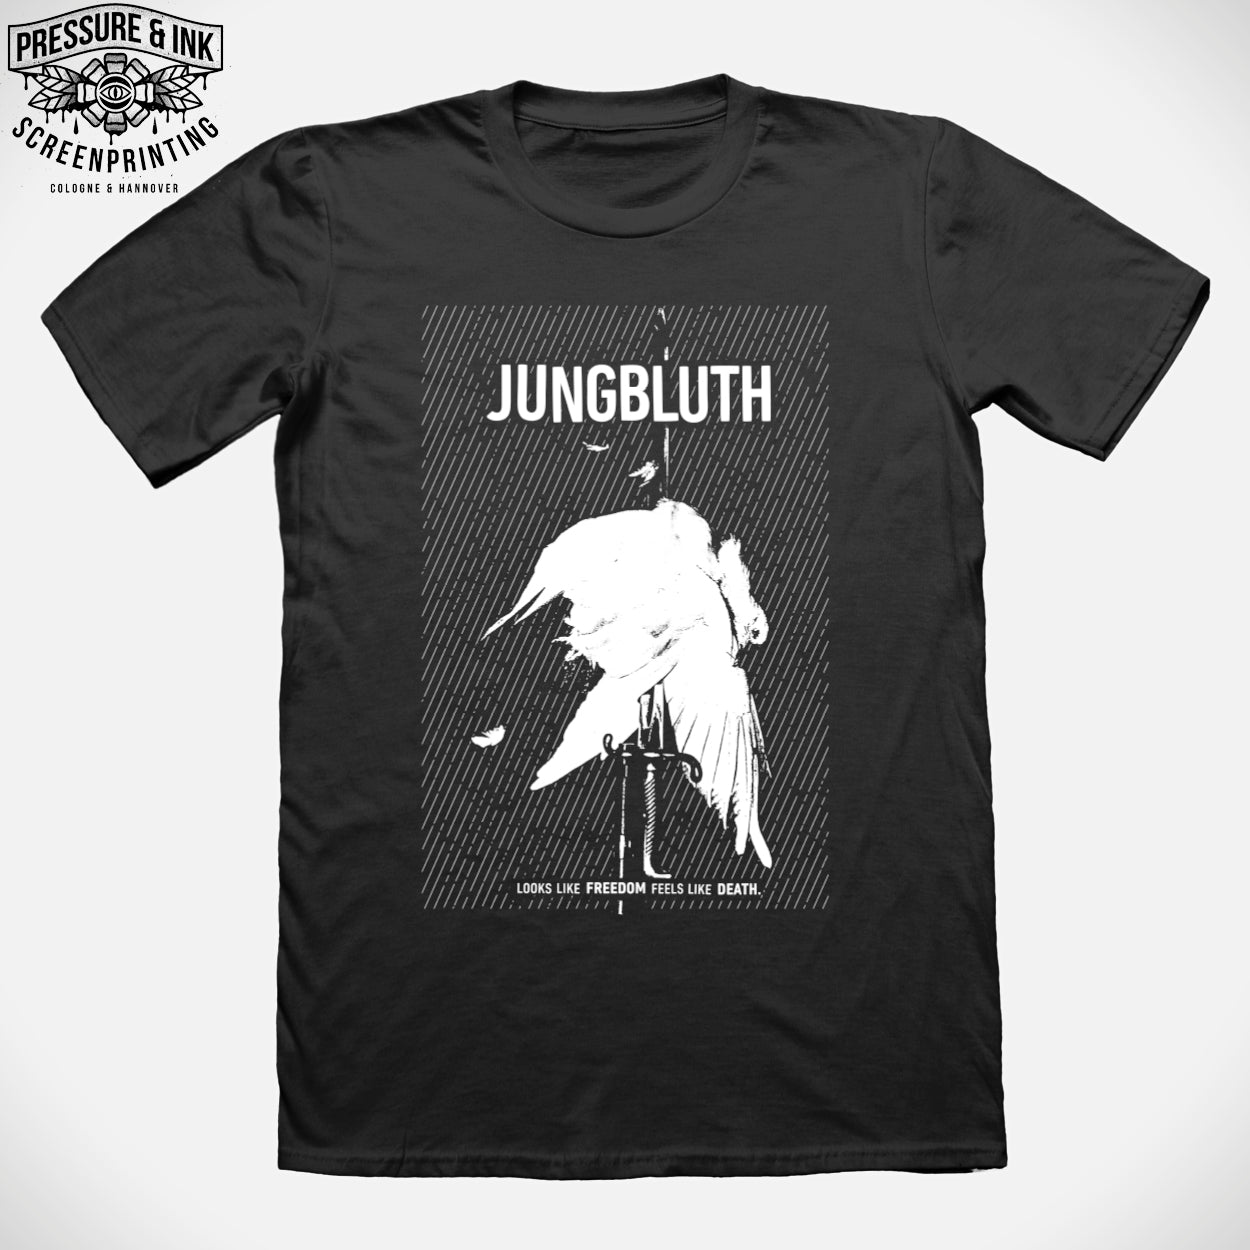 Jungbluth